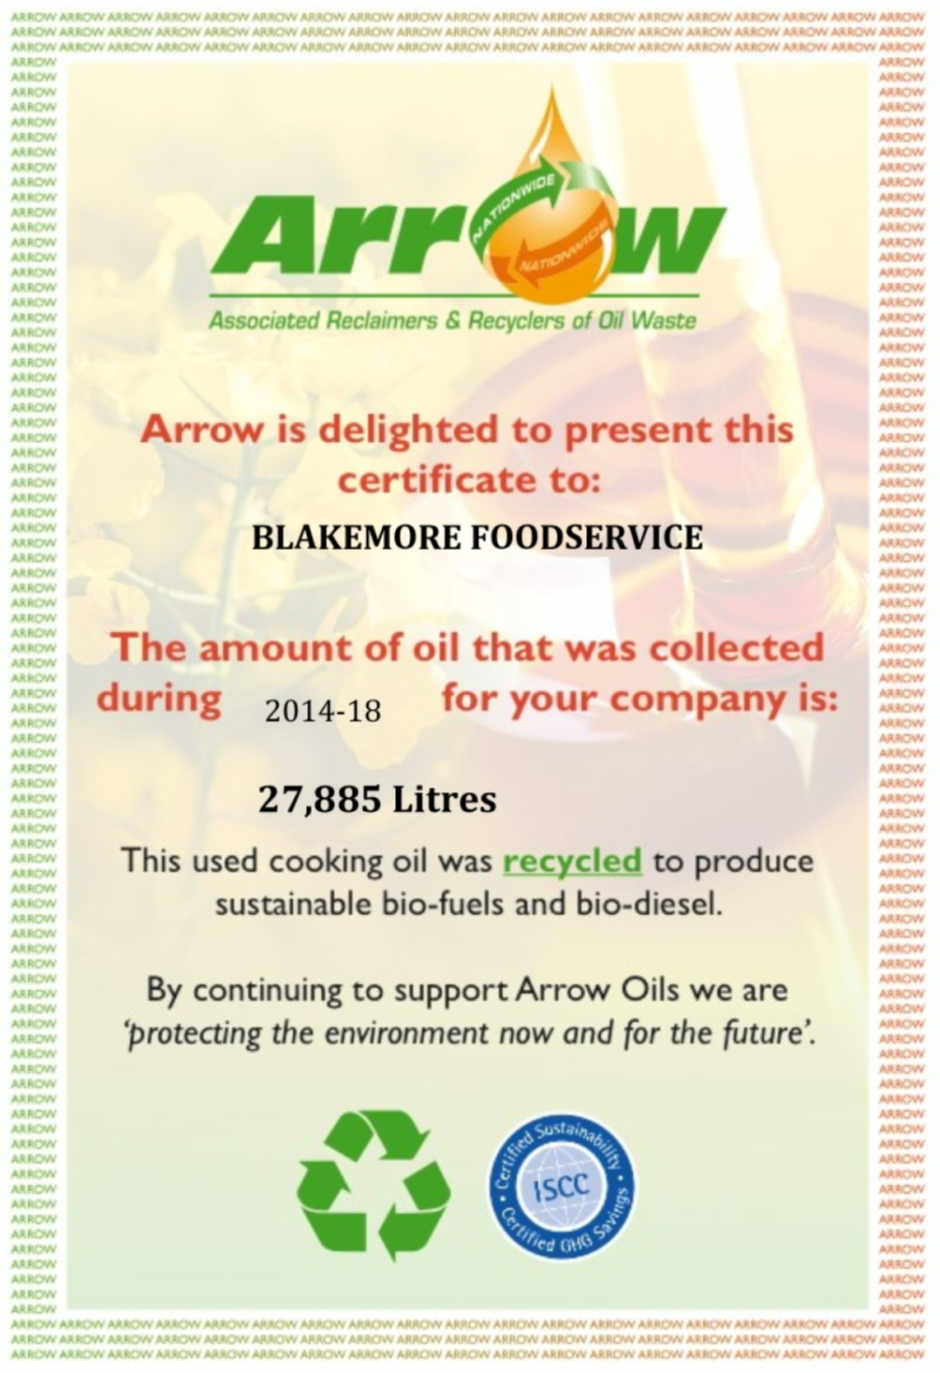 Blakemore_Foodservice_Oil_Collection_Certificate